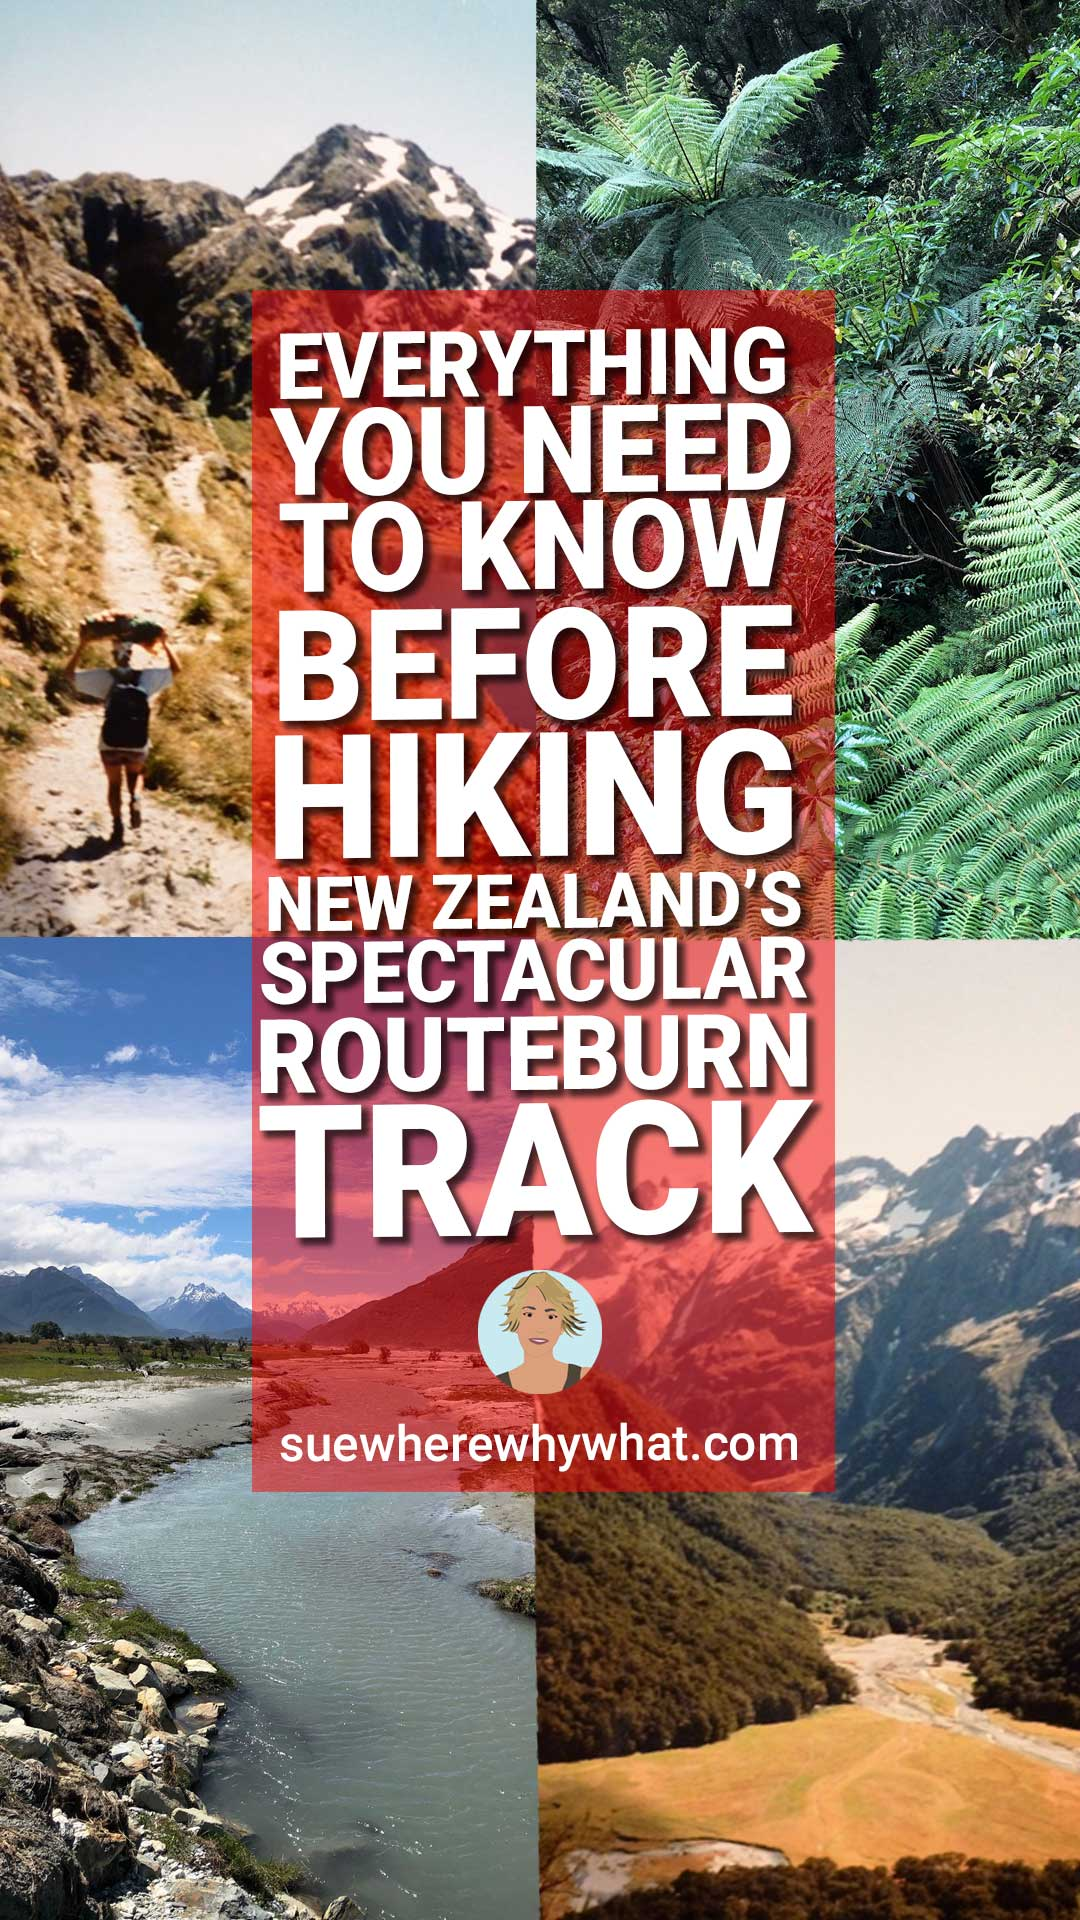 Hiking the Routeburn Track, New Zealand – All You Need To Know To Do It The Right Way!